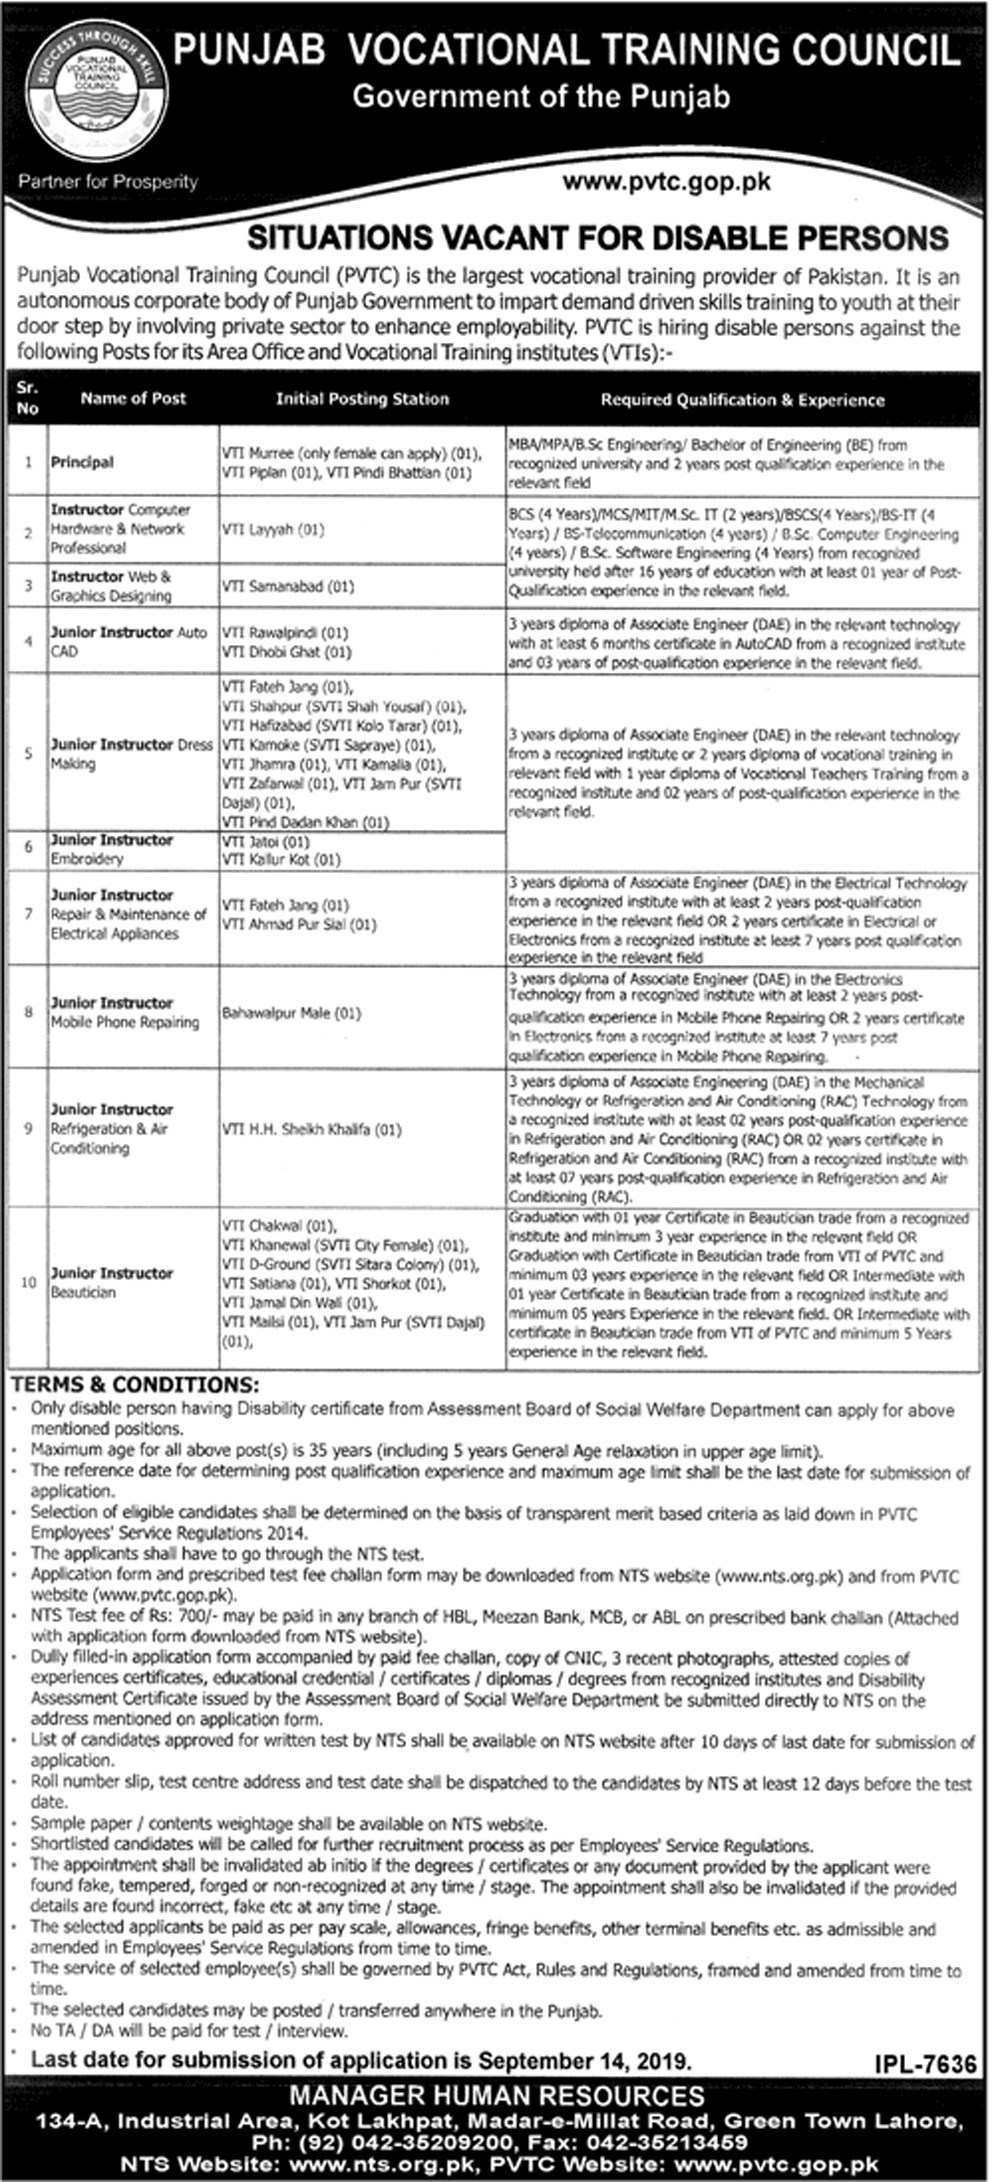 Punjab Vocational Training Council PVTC Jobs Disable Person NTS Test Roll No Slip